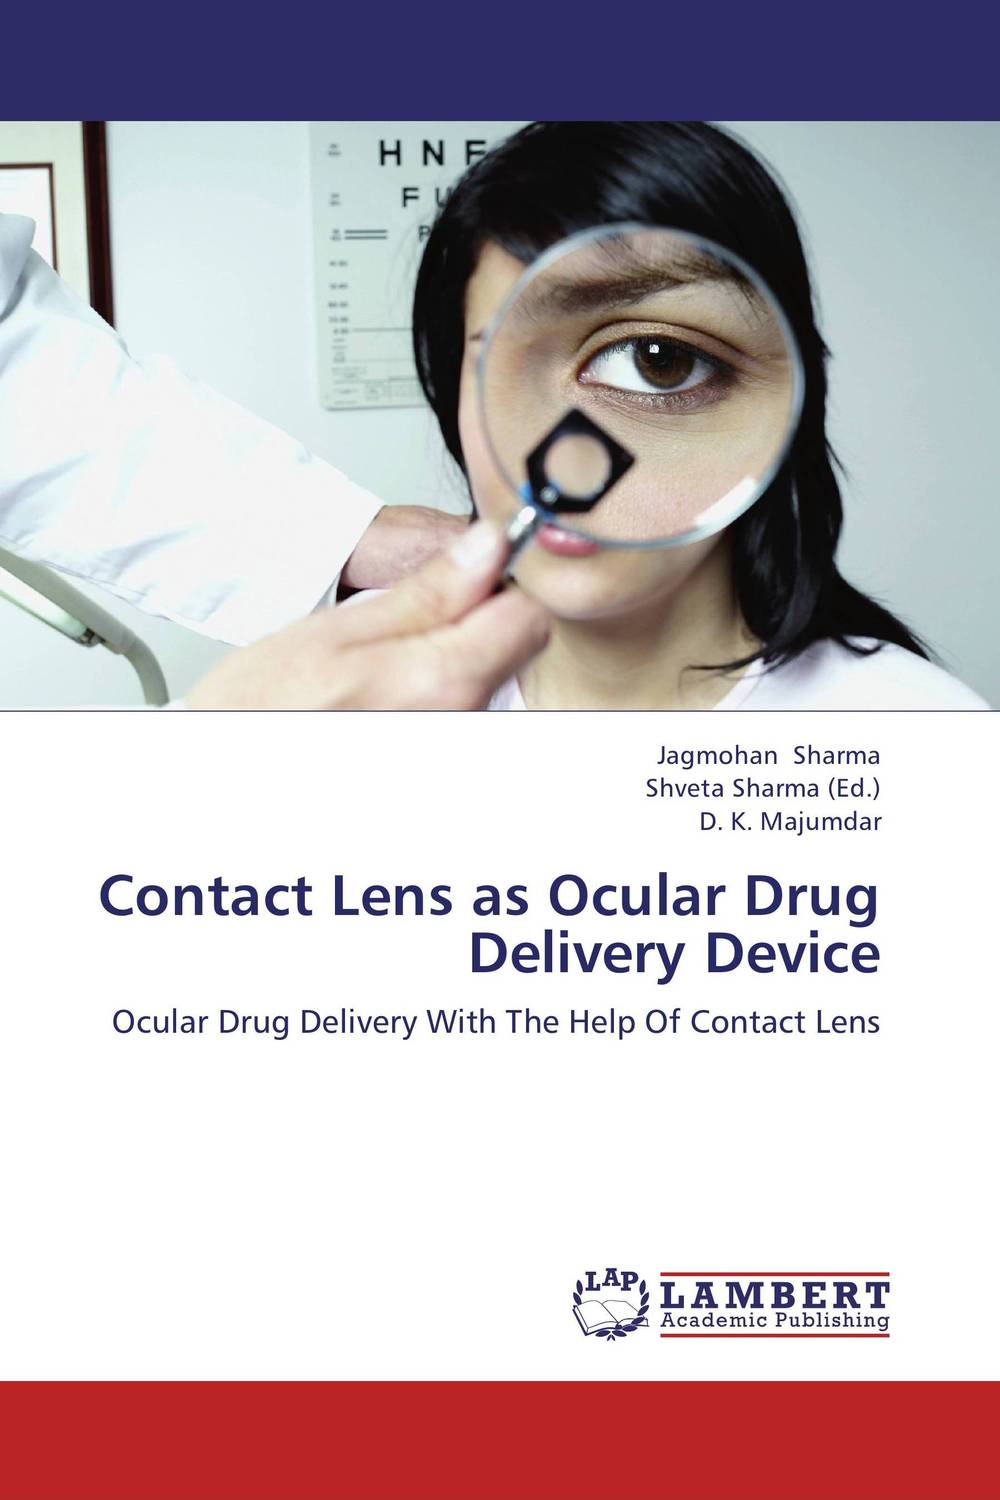 Contact Lens as Ocular Drug Delivery Device